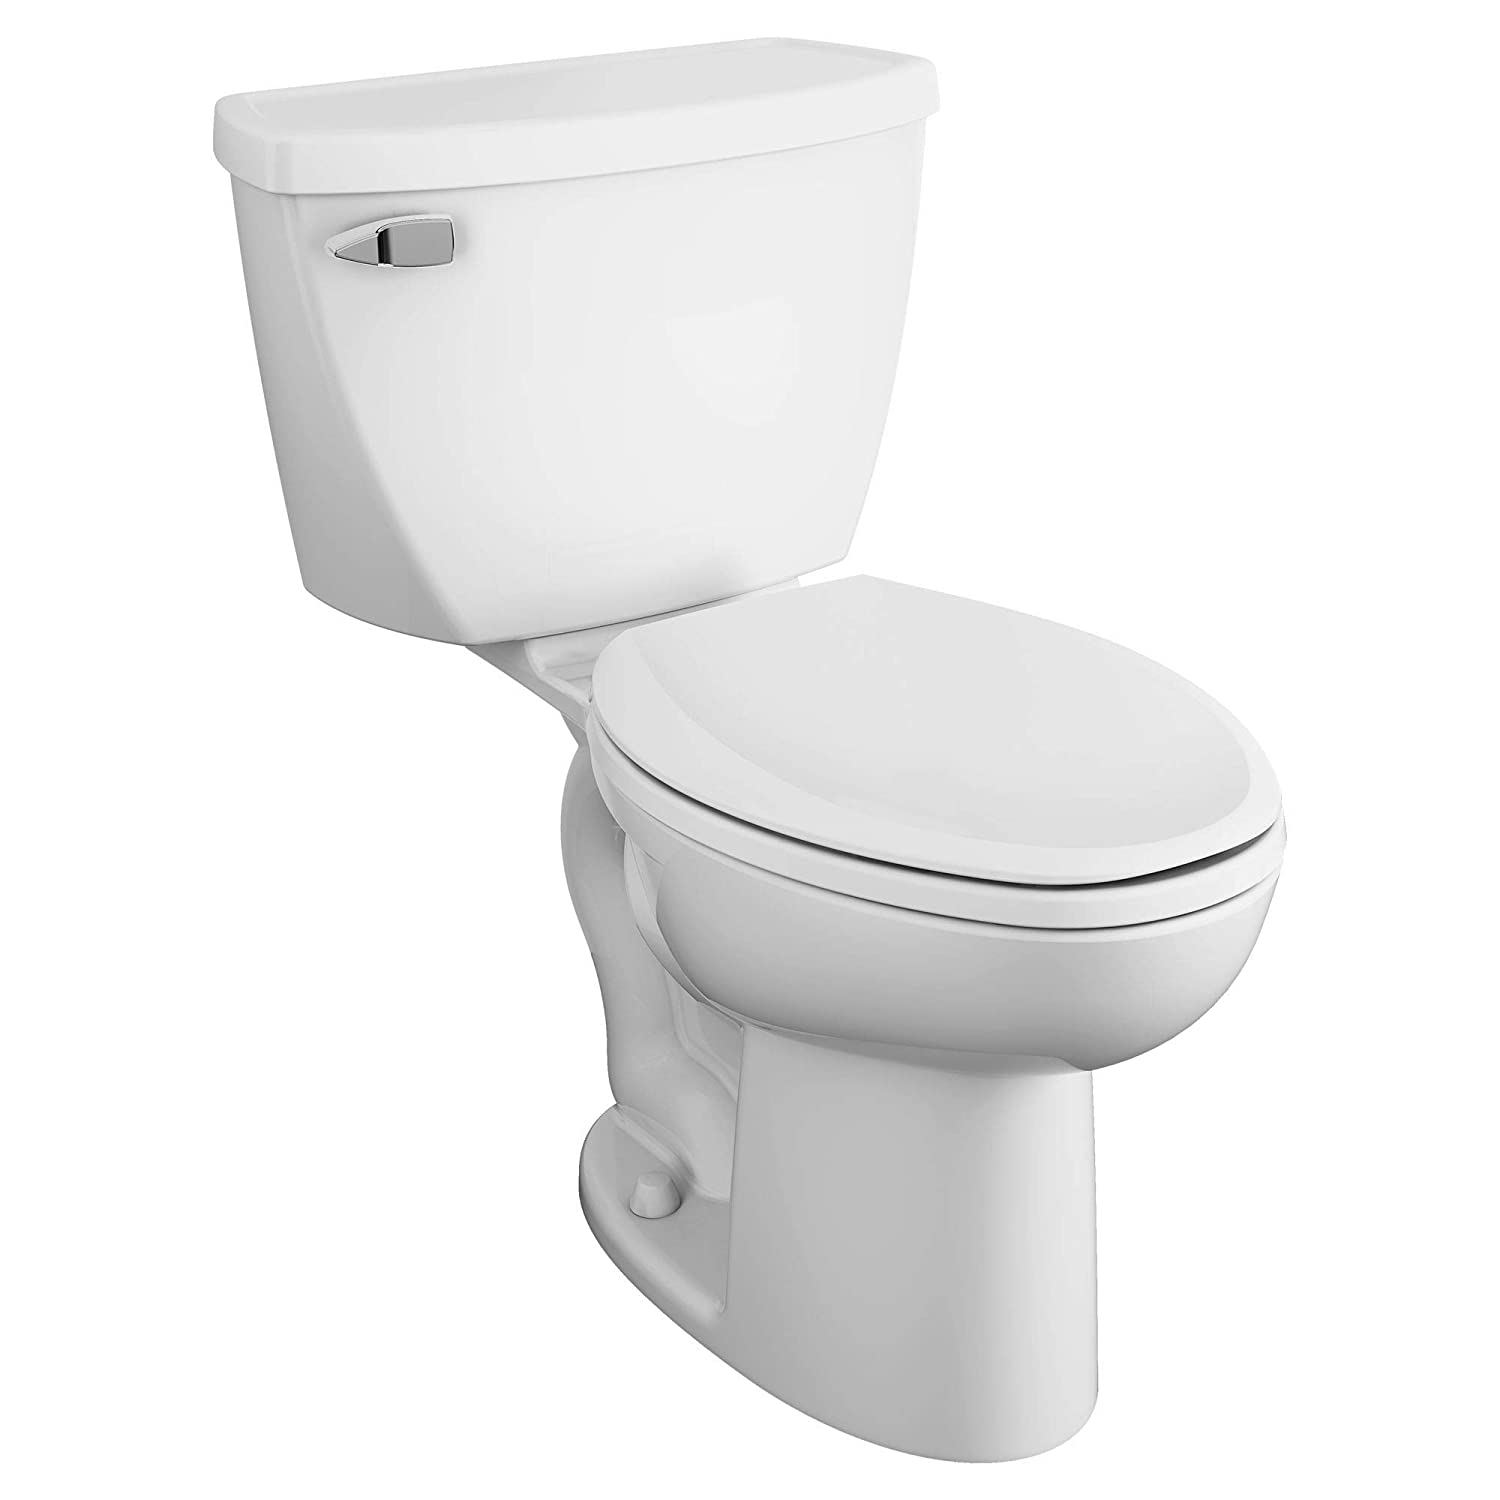 Best Toilets Under $200, $300 to $400 Reviews in 2020 12